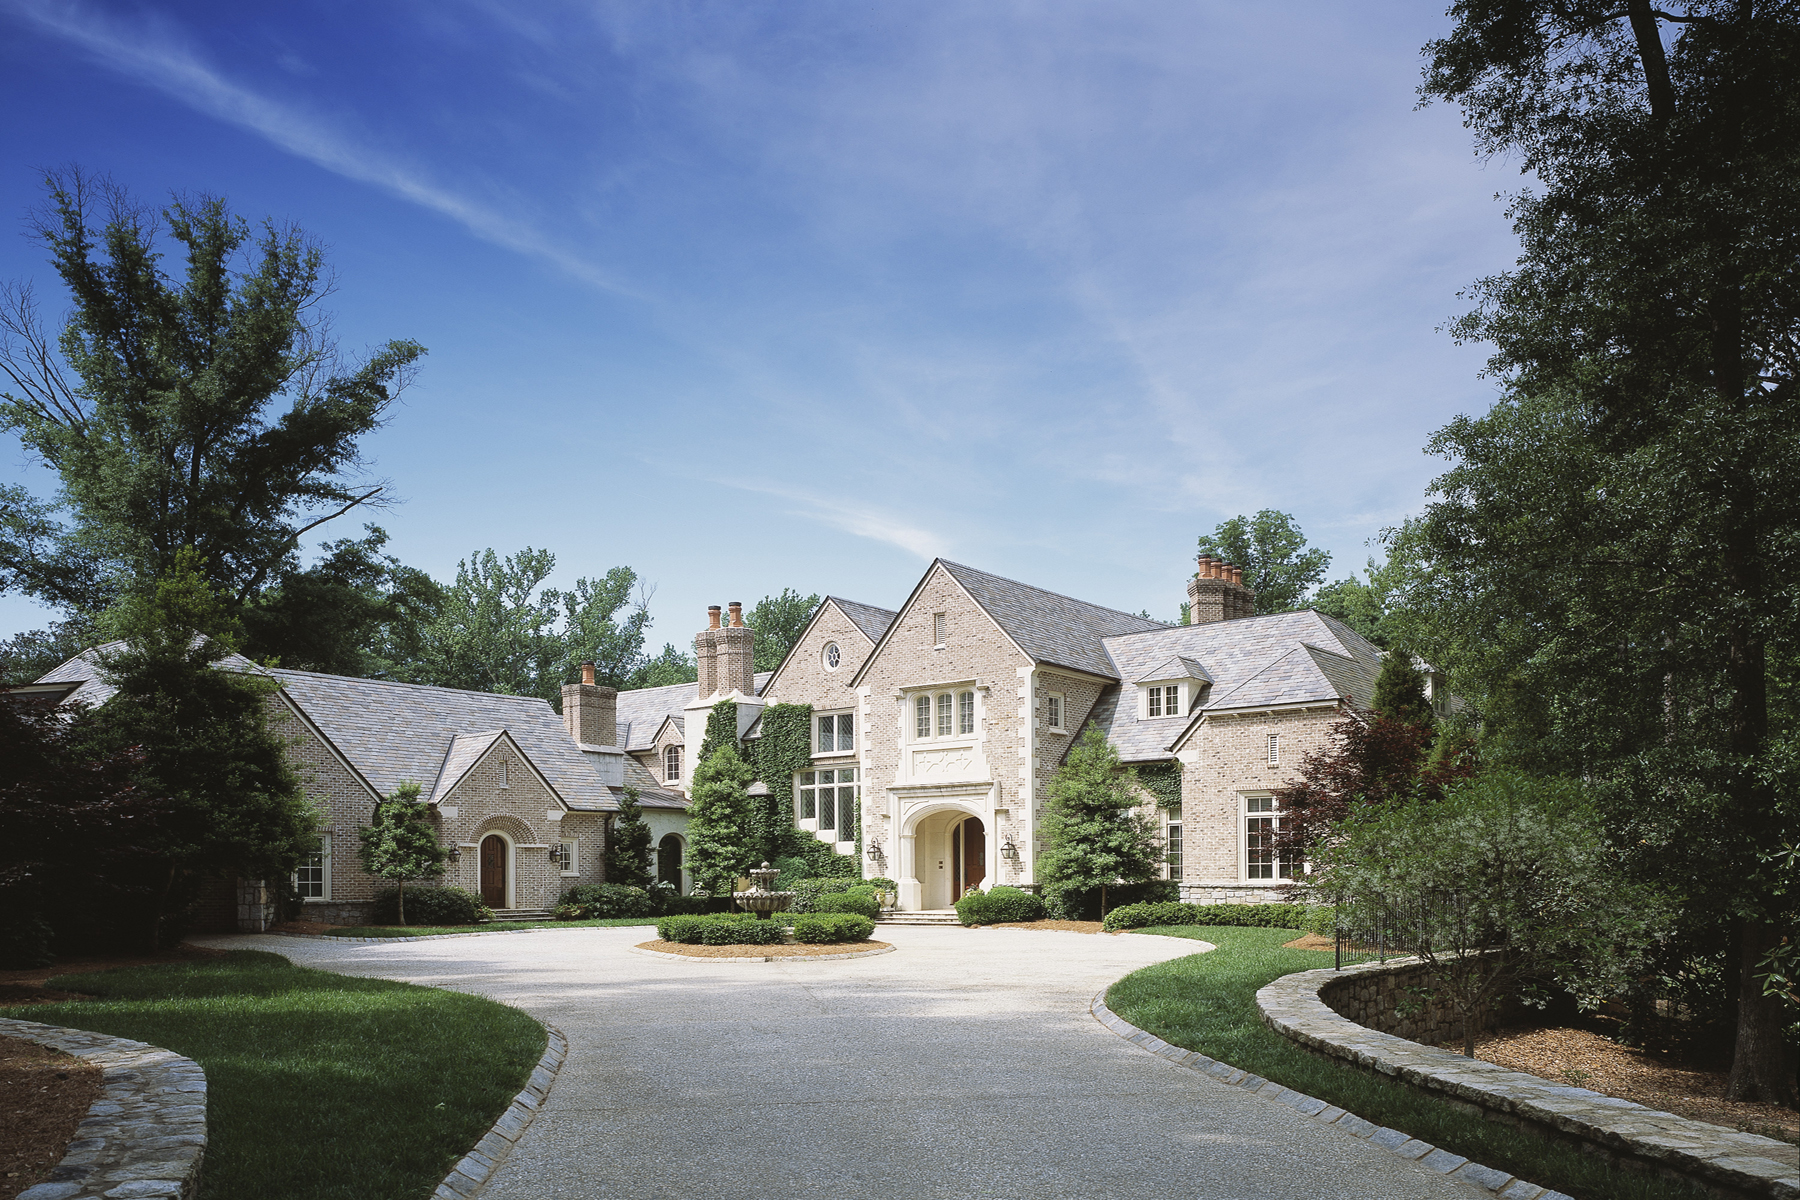 独户住宅 为 销售 在 An Award Winning Tudor In Buckhead 2032 W Paces Ferry Road Buckhead, 亚特兰大, 乔治亚州, 30327 美国